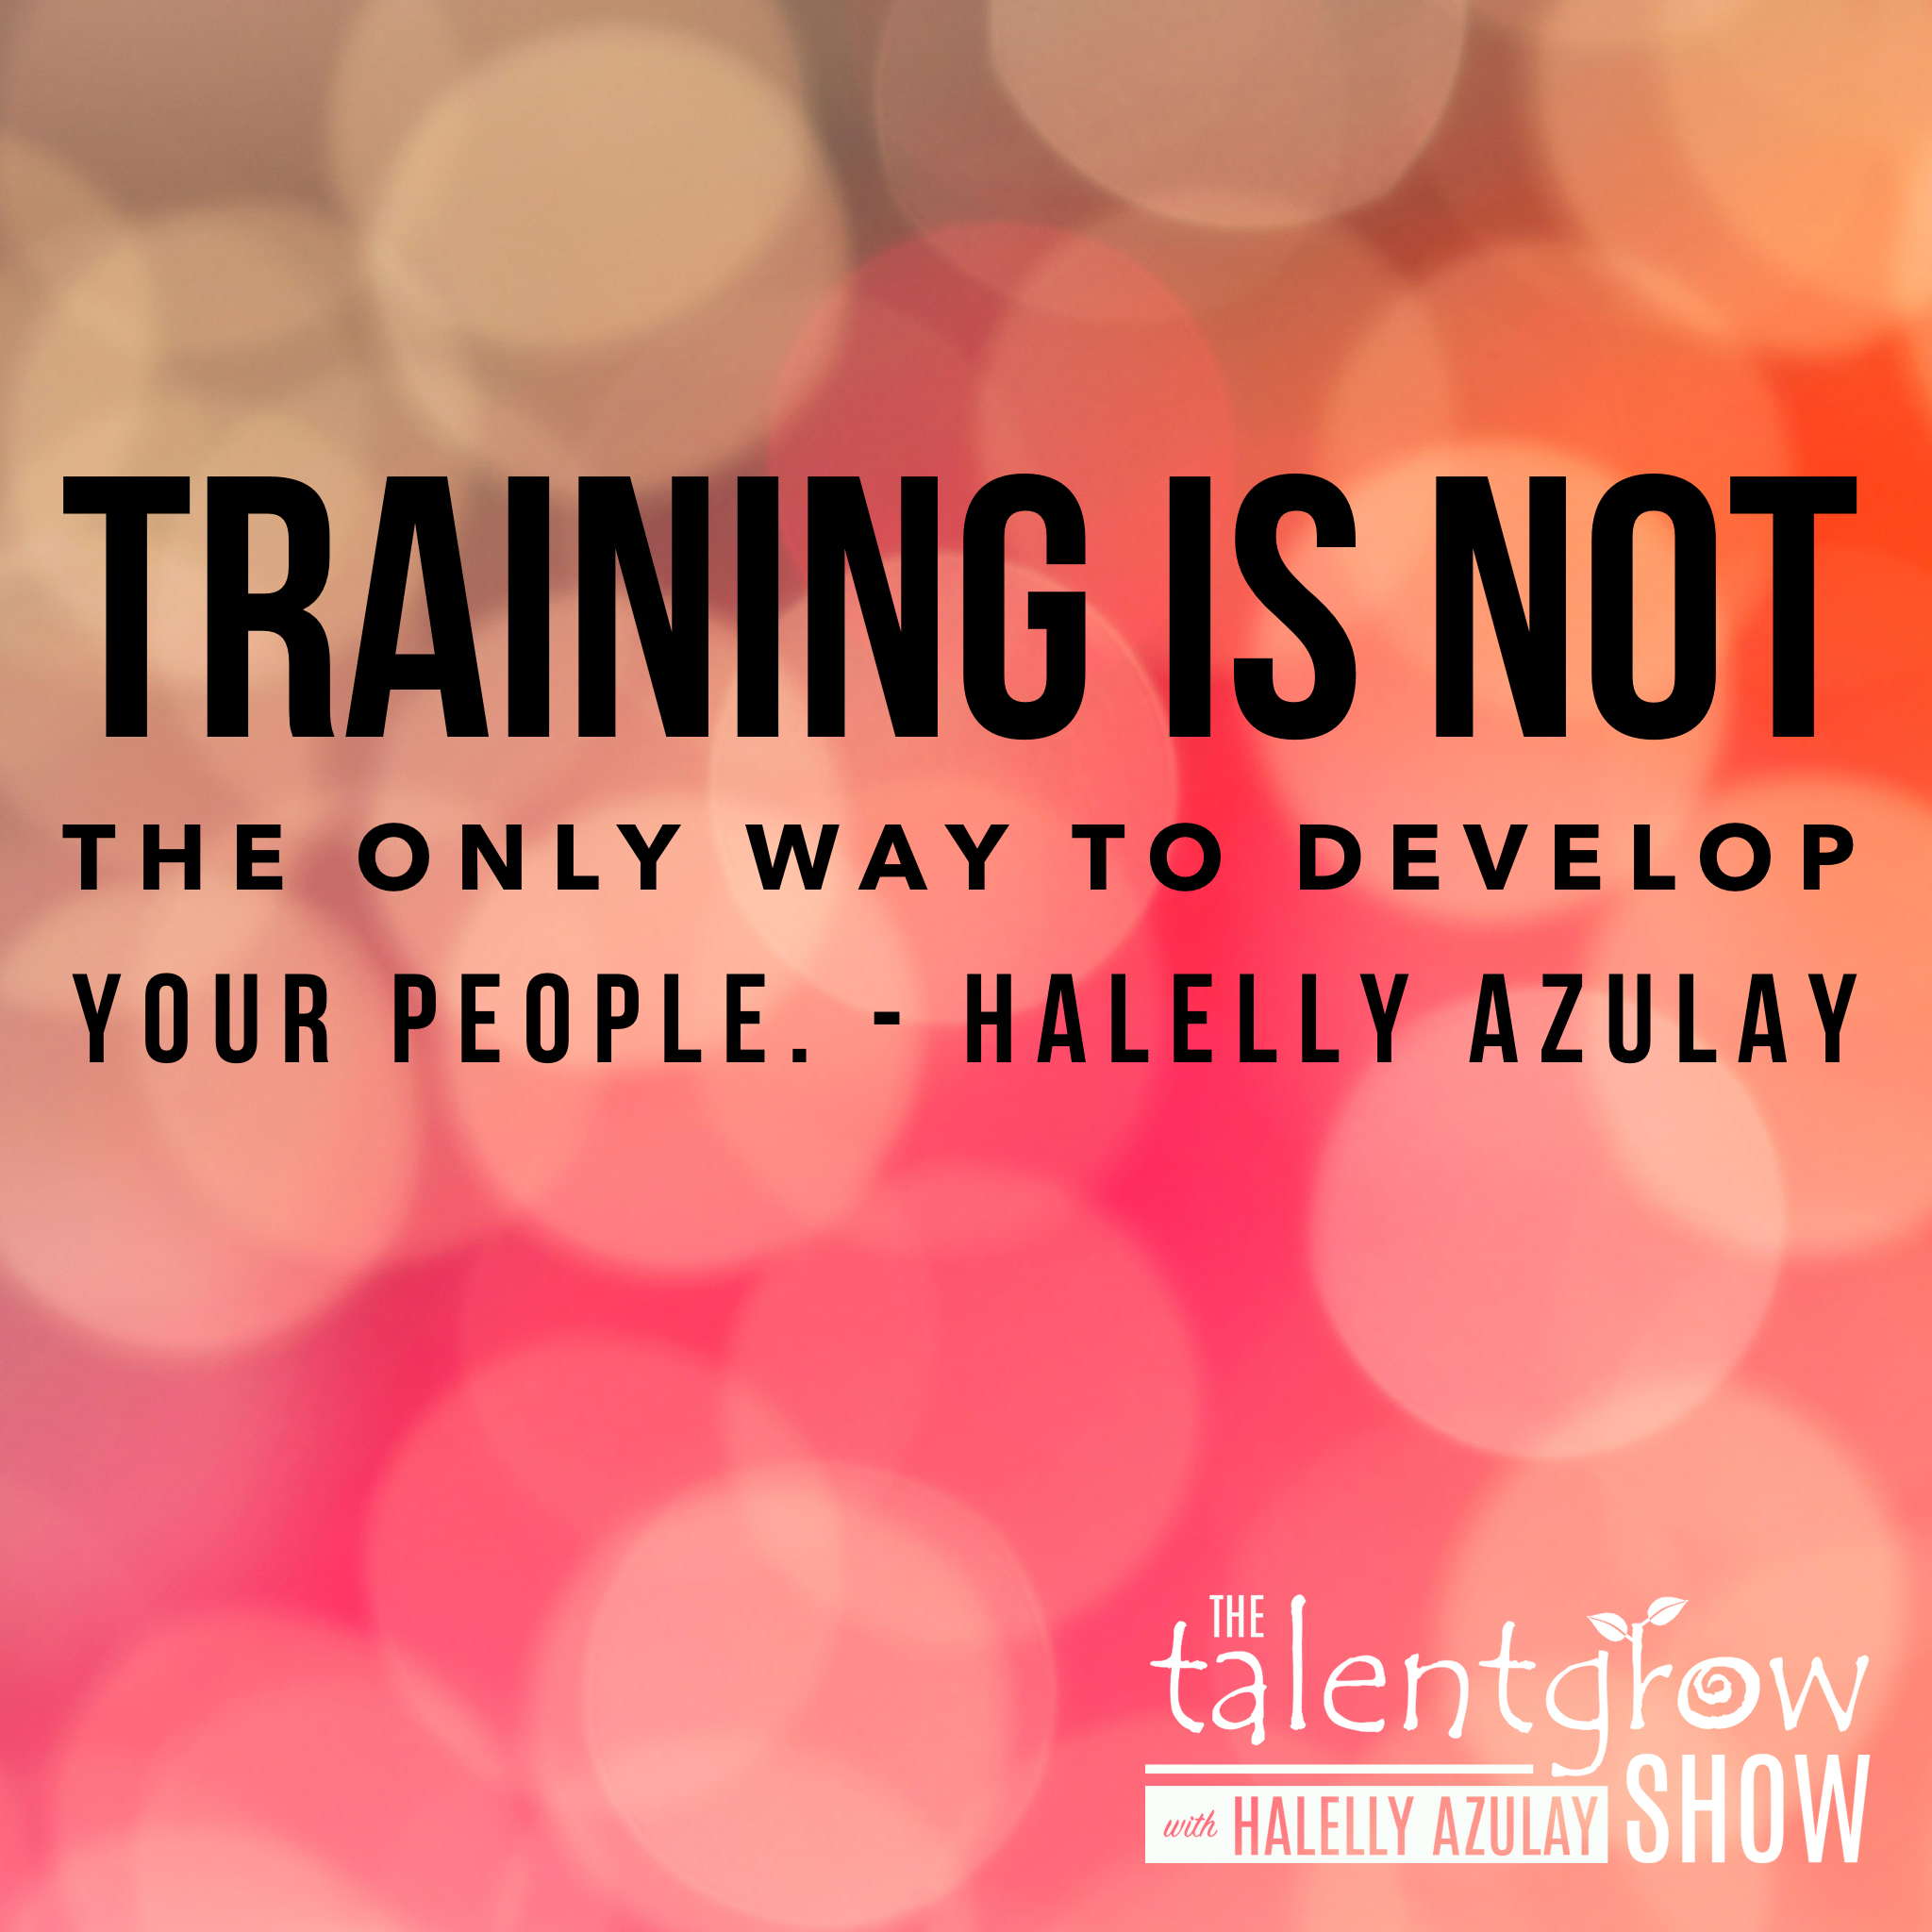 Training is not the only way - tip by Halelly Azulay on the TalentGrow Show podcast the Flipped episode